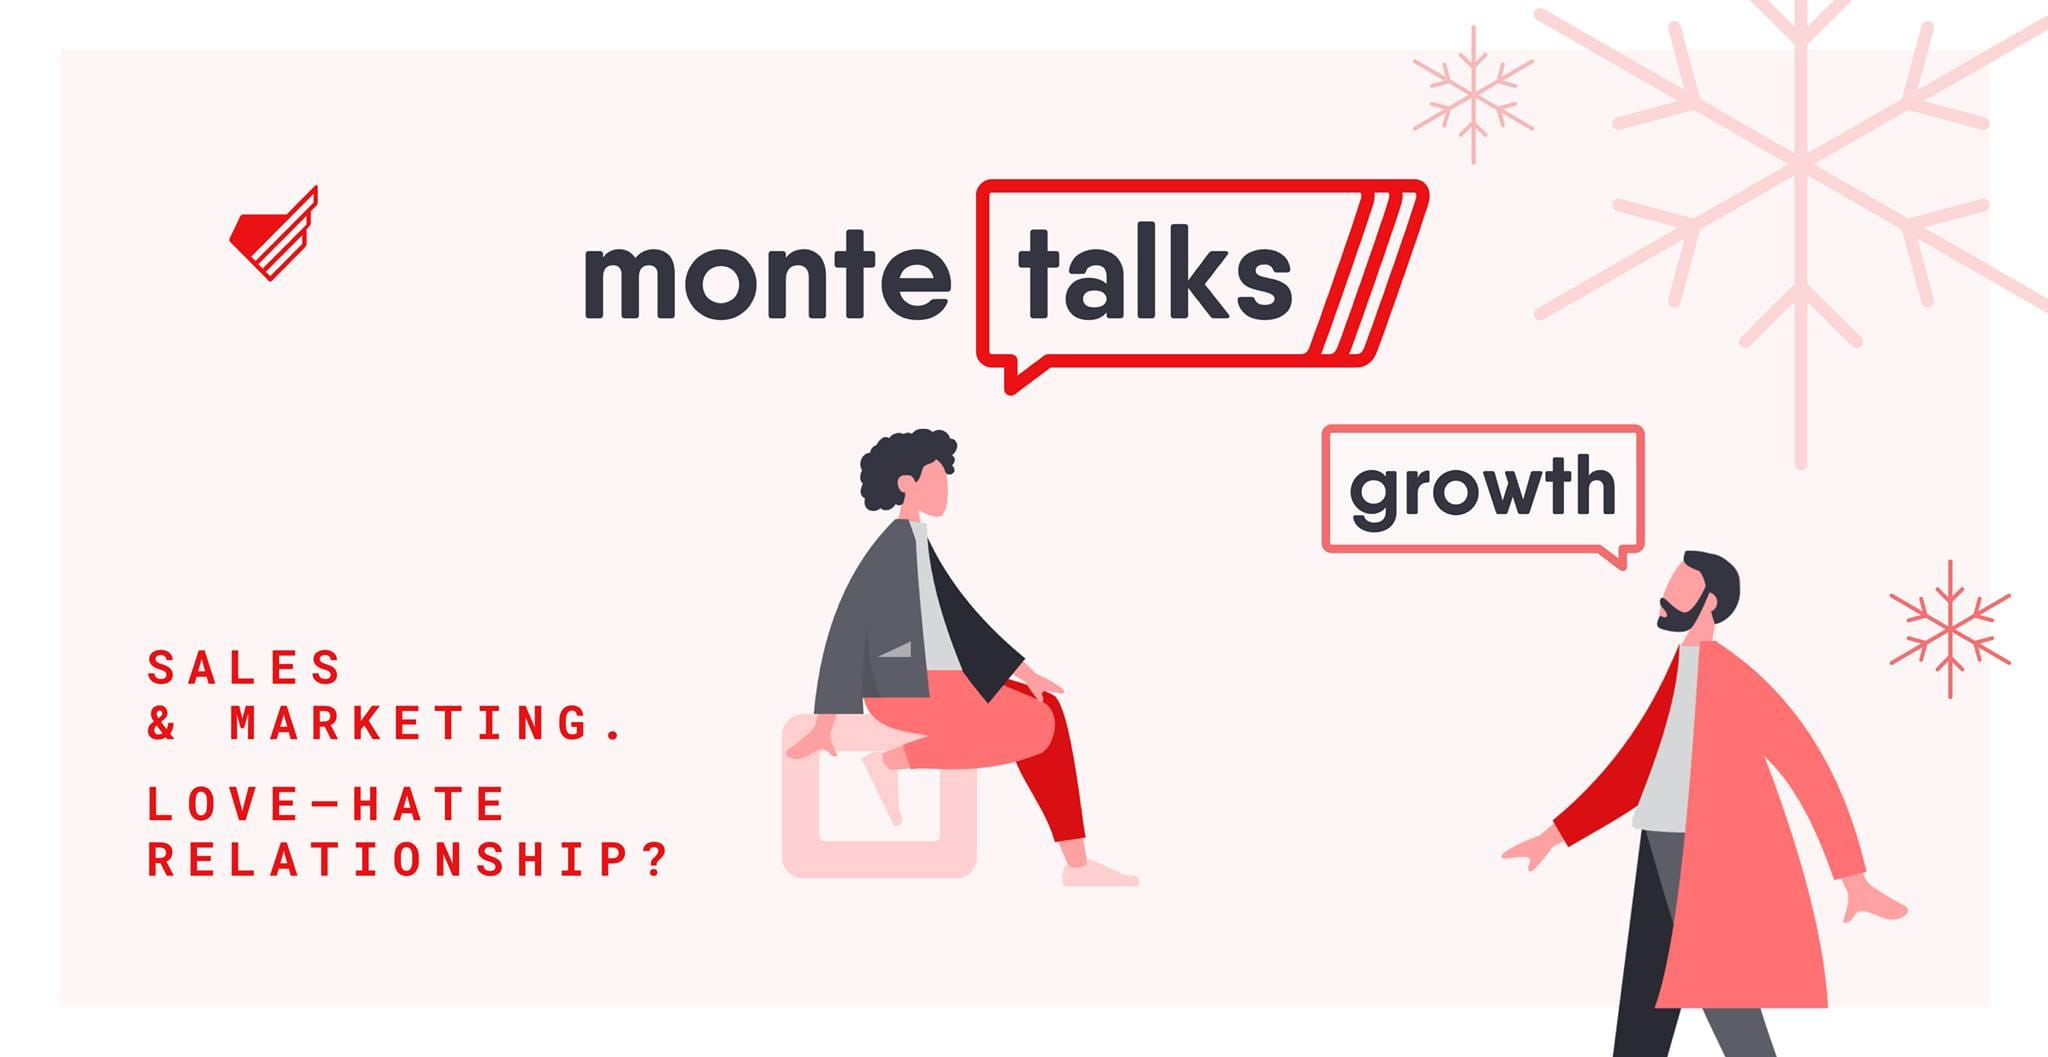 MonteTalks - Growth